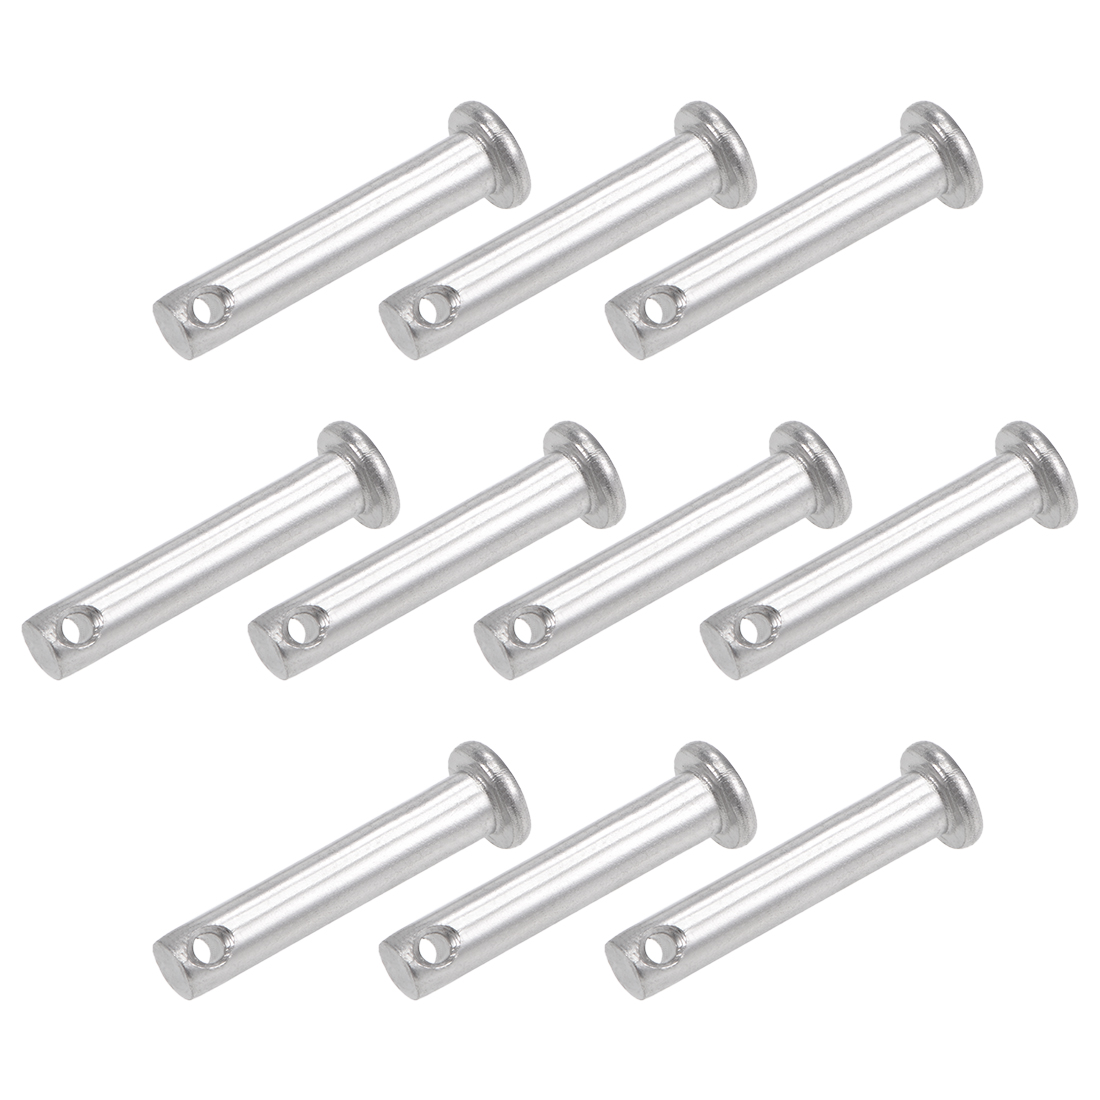 Single Hole Clevis Pins - 5mm x 25mm Flat Head 304 Stainless Steel Pin 10Pcs